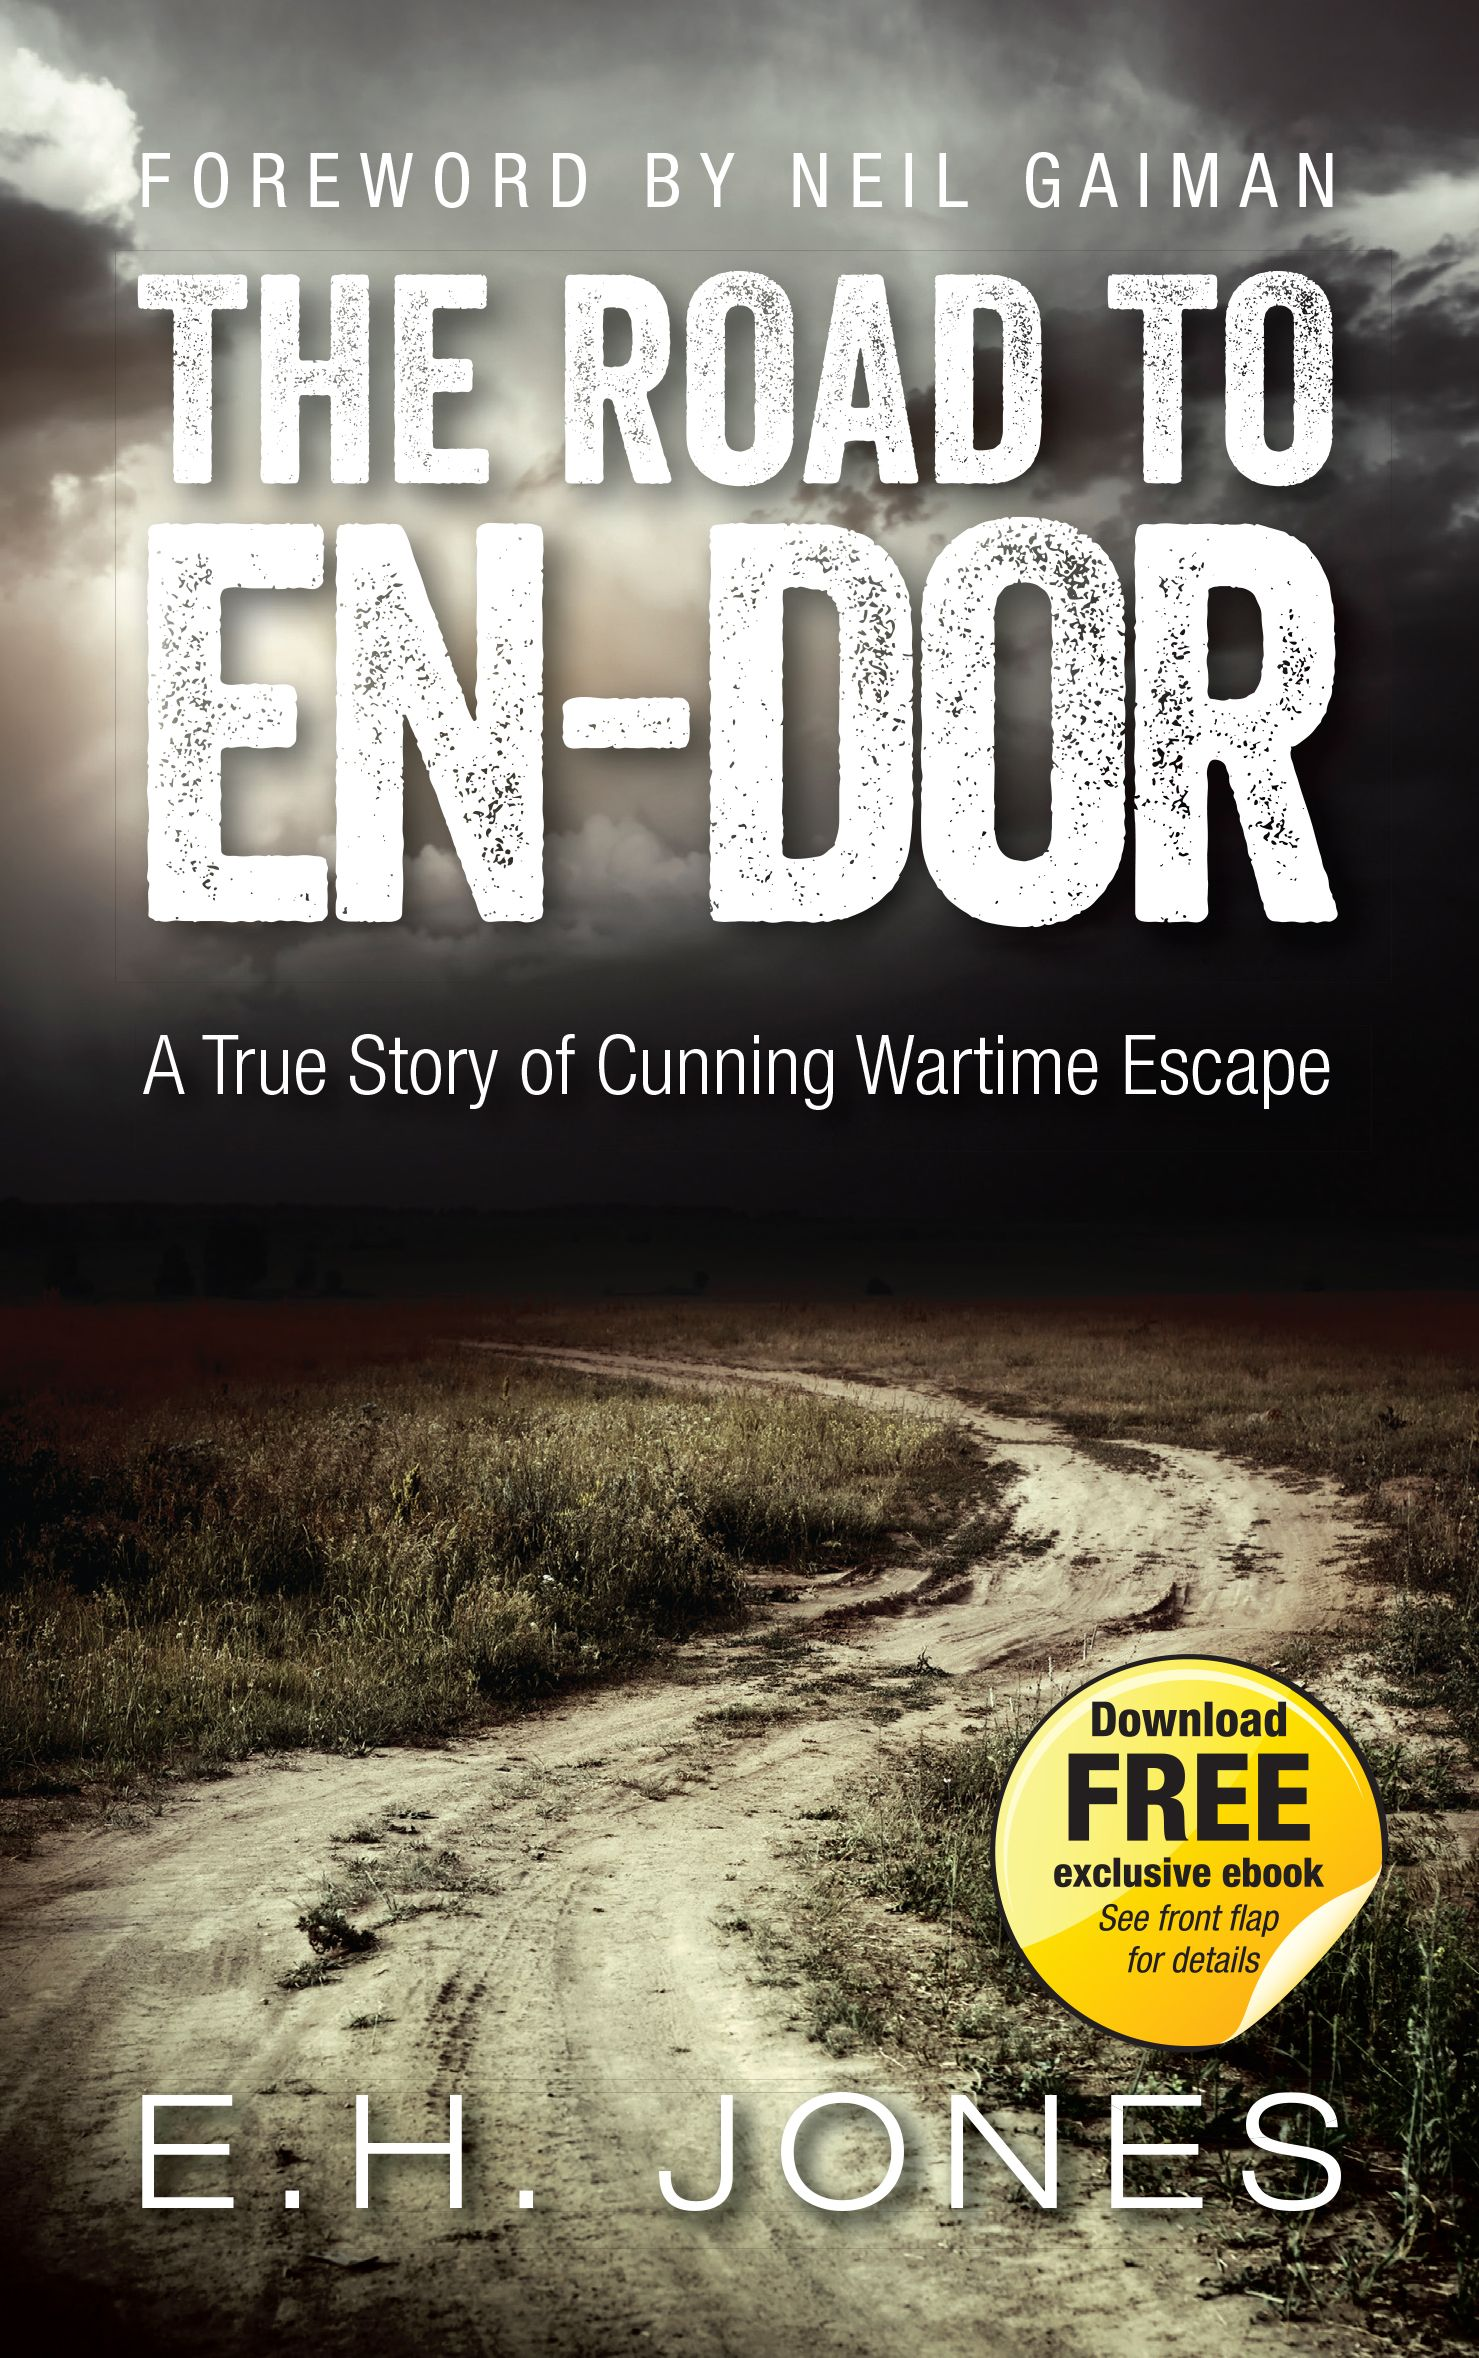 Discover The Incredible First World War Escape Story Unlike Any Other With A Foreword By Neil Gaim The Incredible True Story True Stories Writing Short Stories